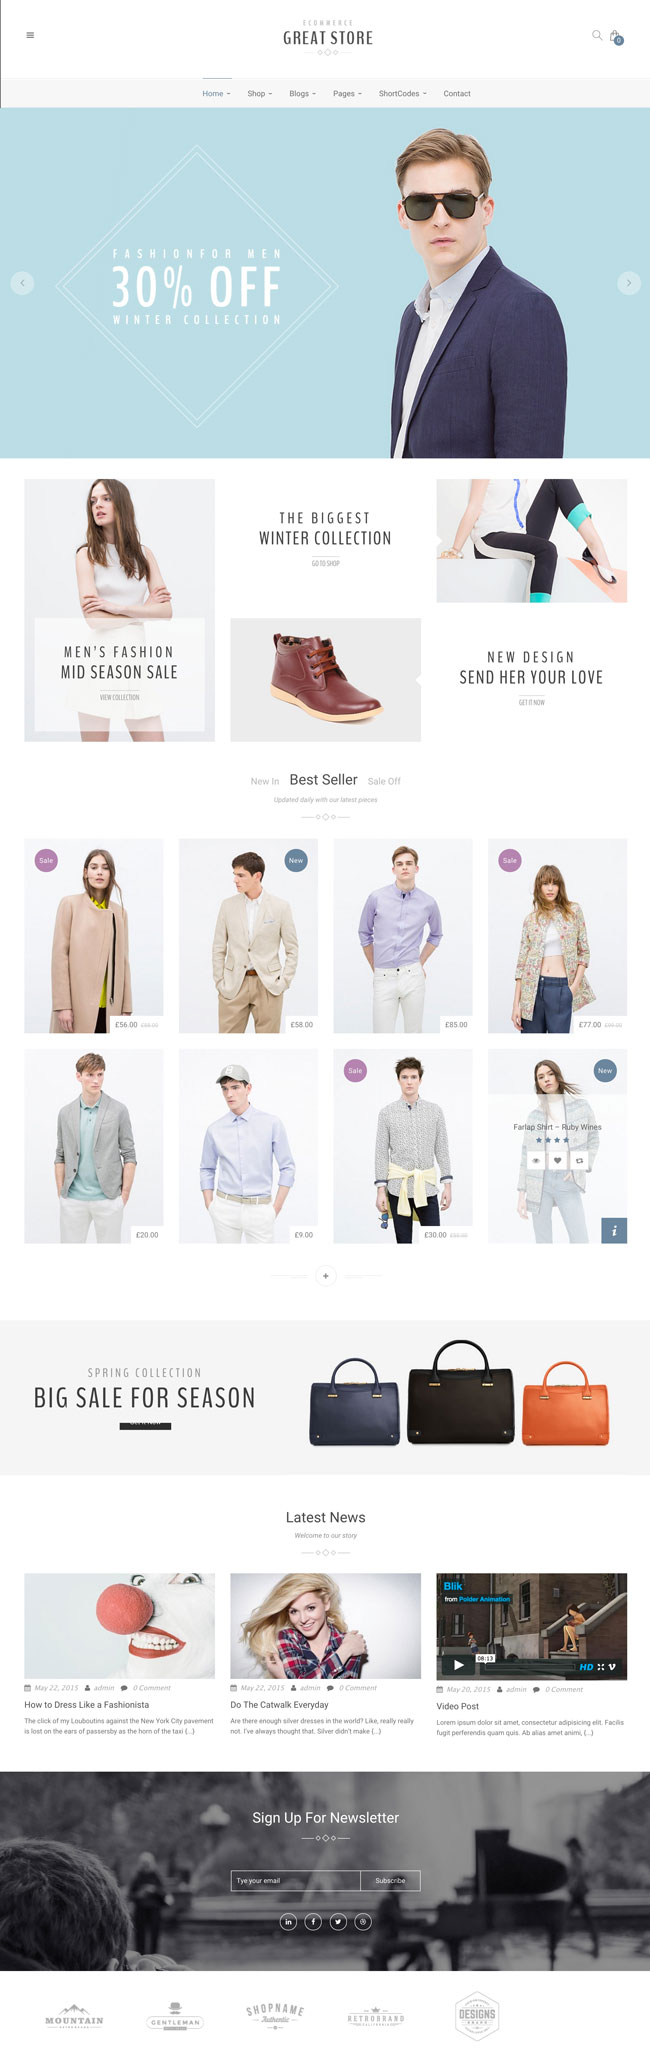 Great-Store-Responsive-WordPress-Theme-eCommerce